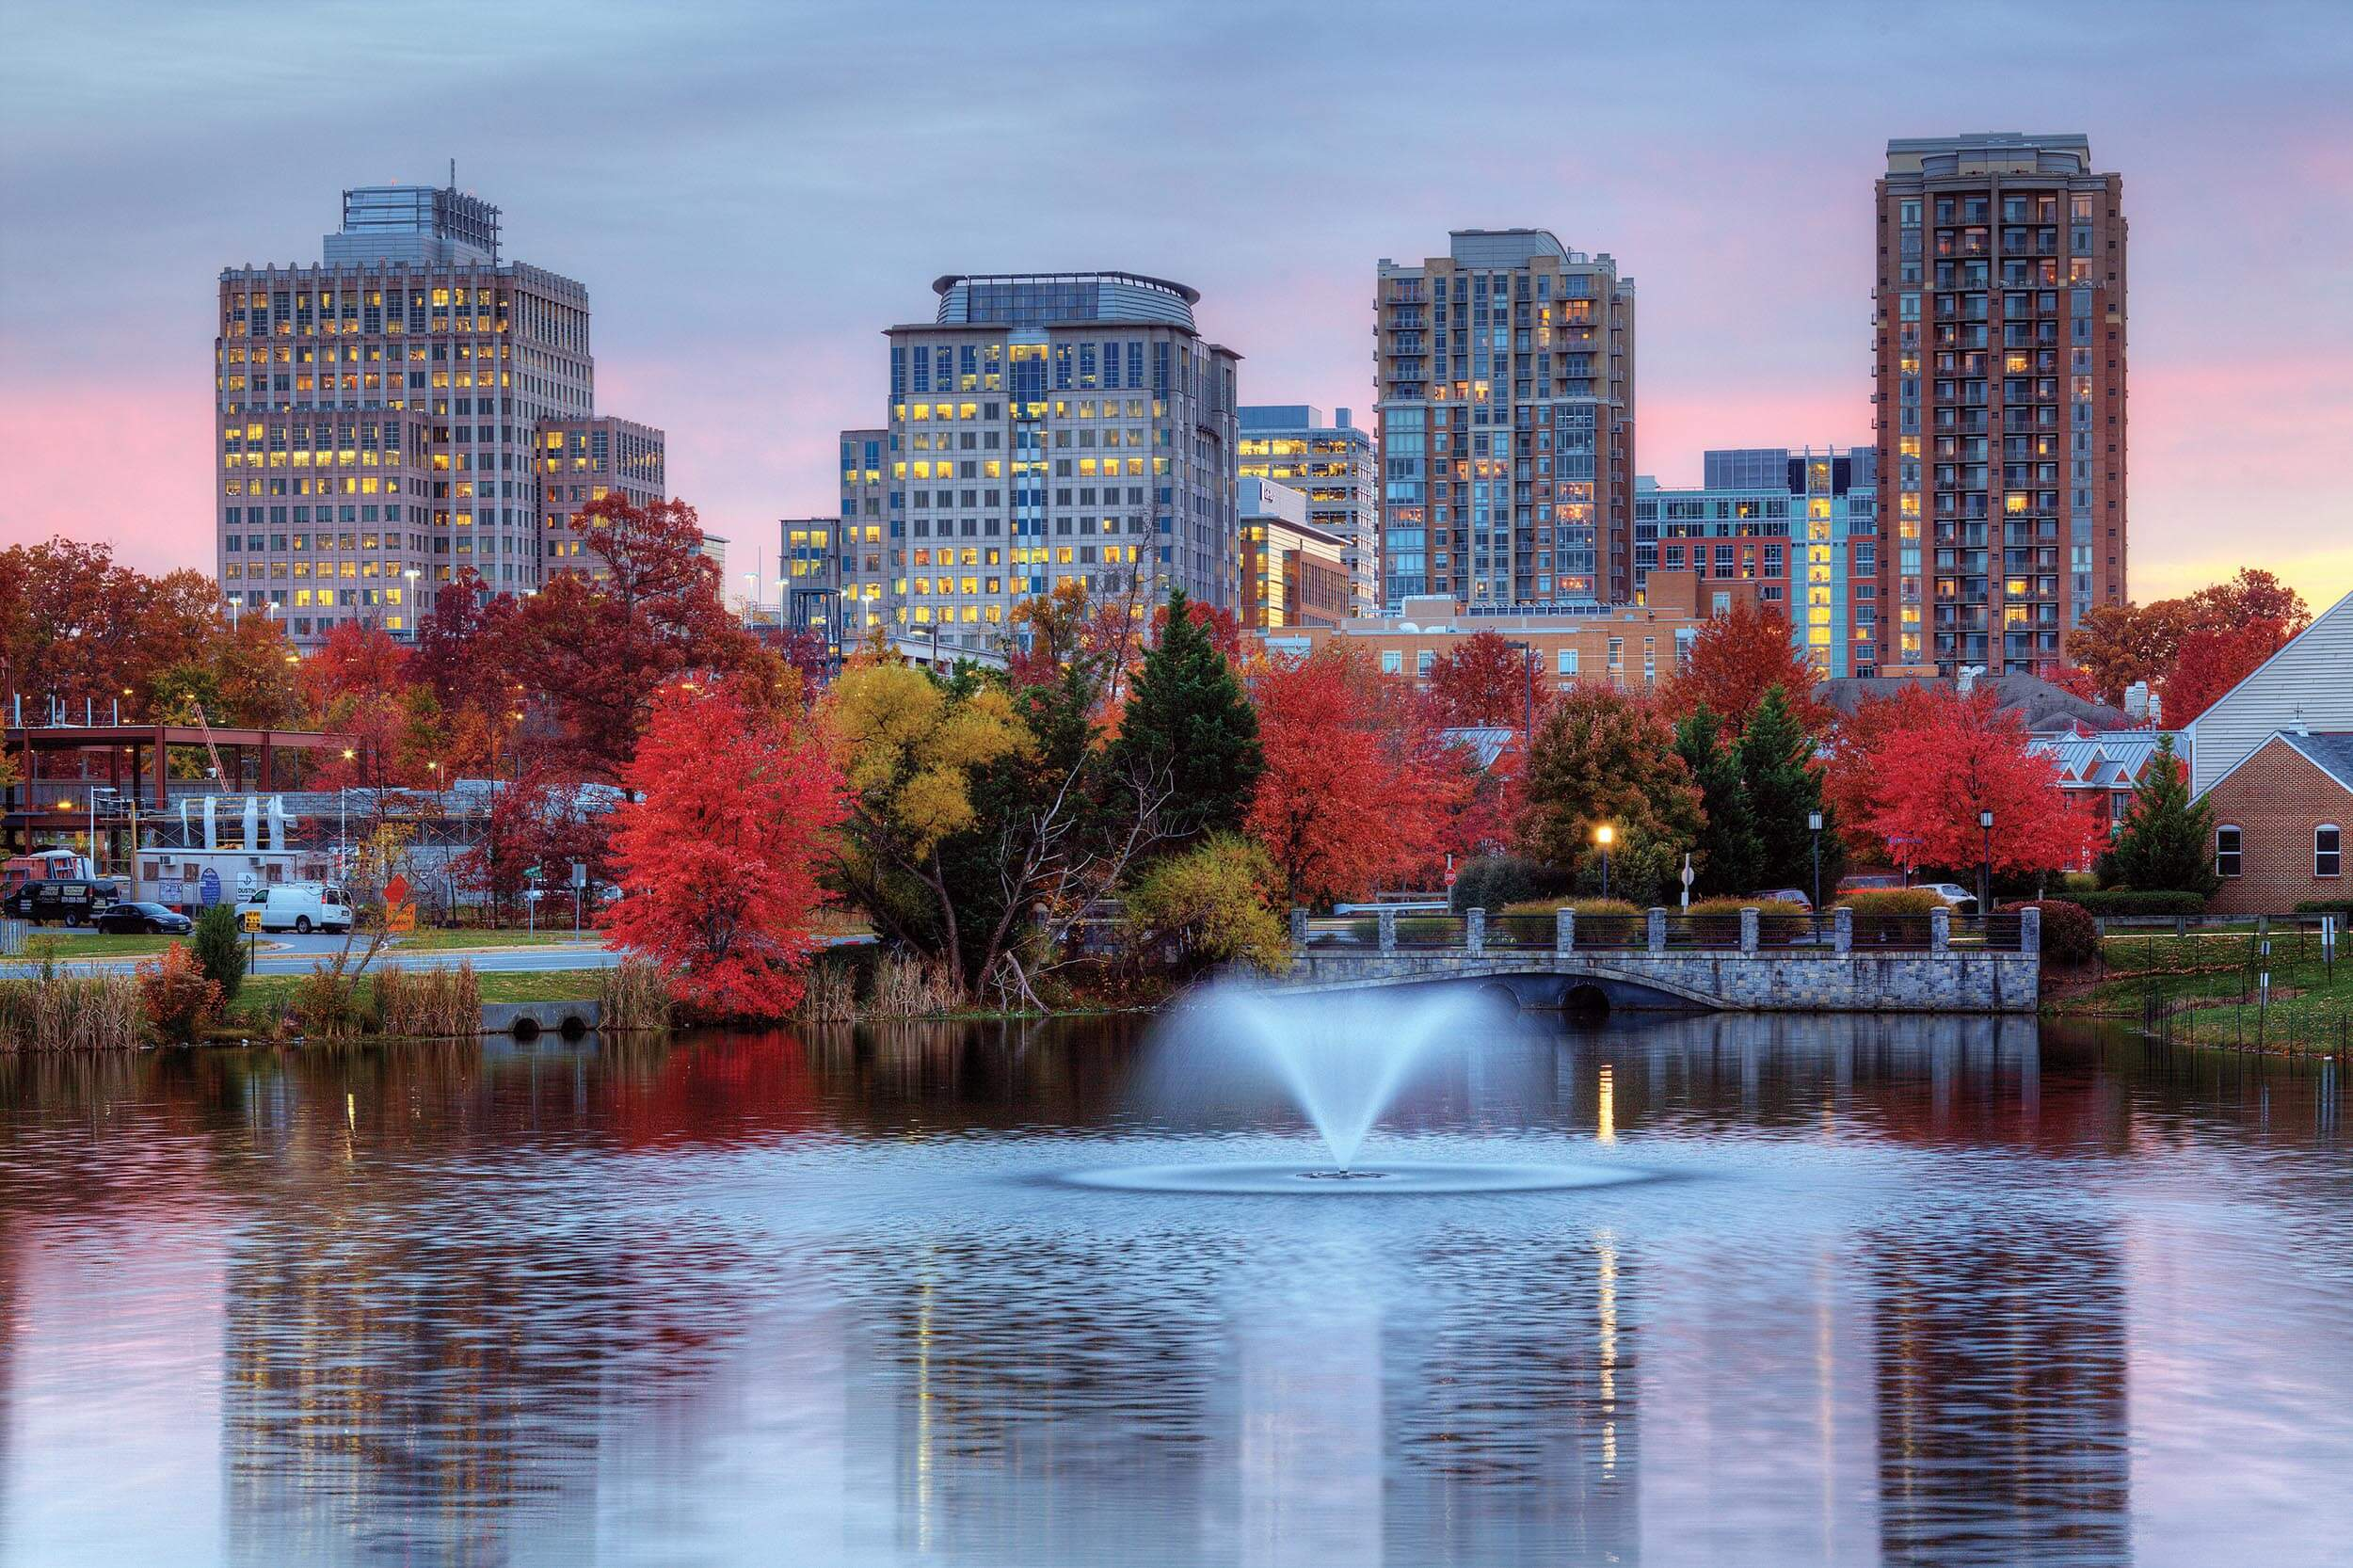 A view of Reston town center across a lake in Northern Virginia. Photo by Greg Hess.